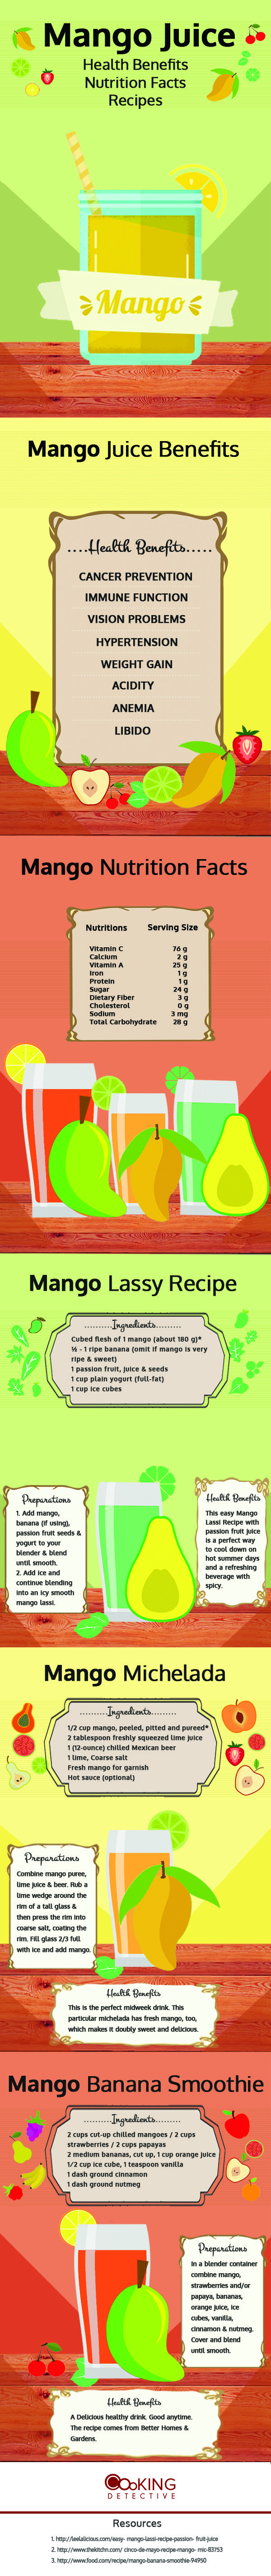 Mango Juice Health Benefits, Nutrition Facts